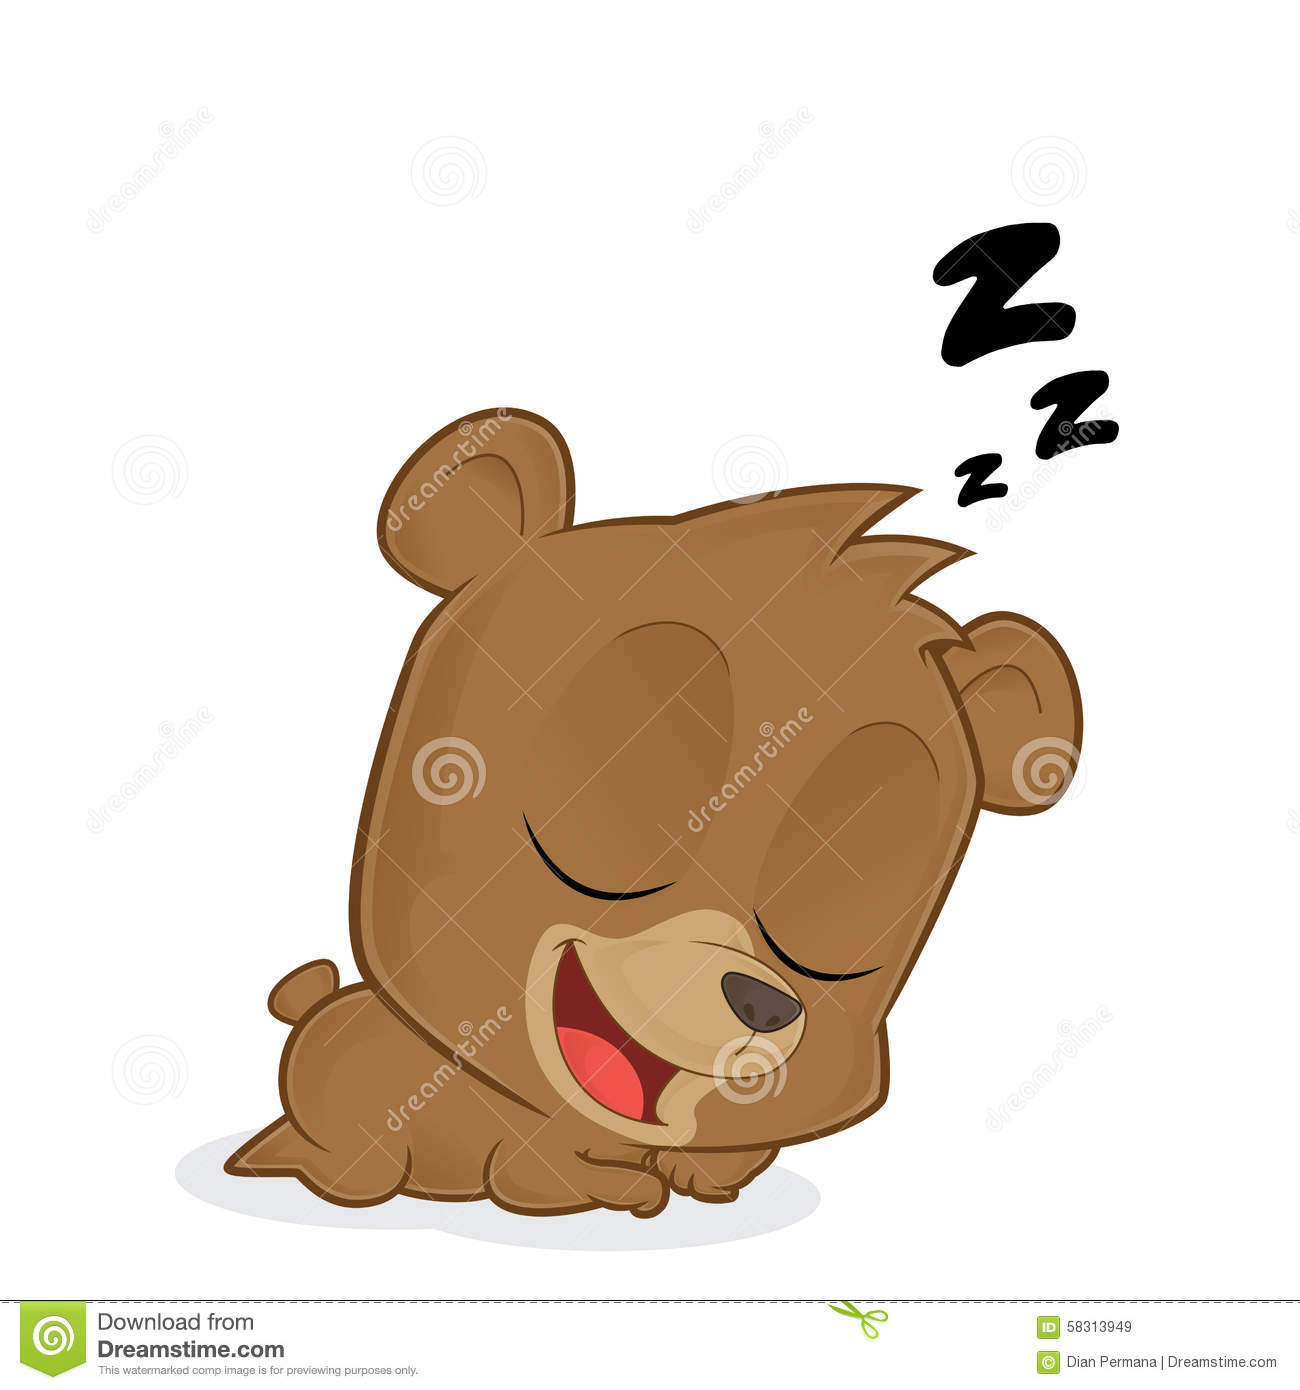 Clipart picture of a sleeping bear cartoon character.